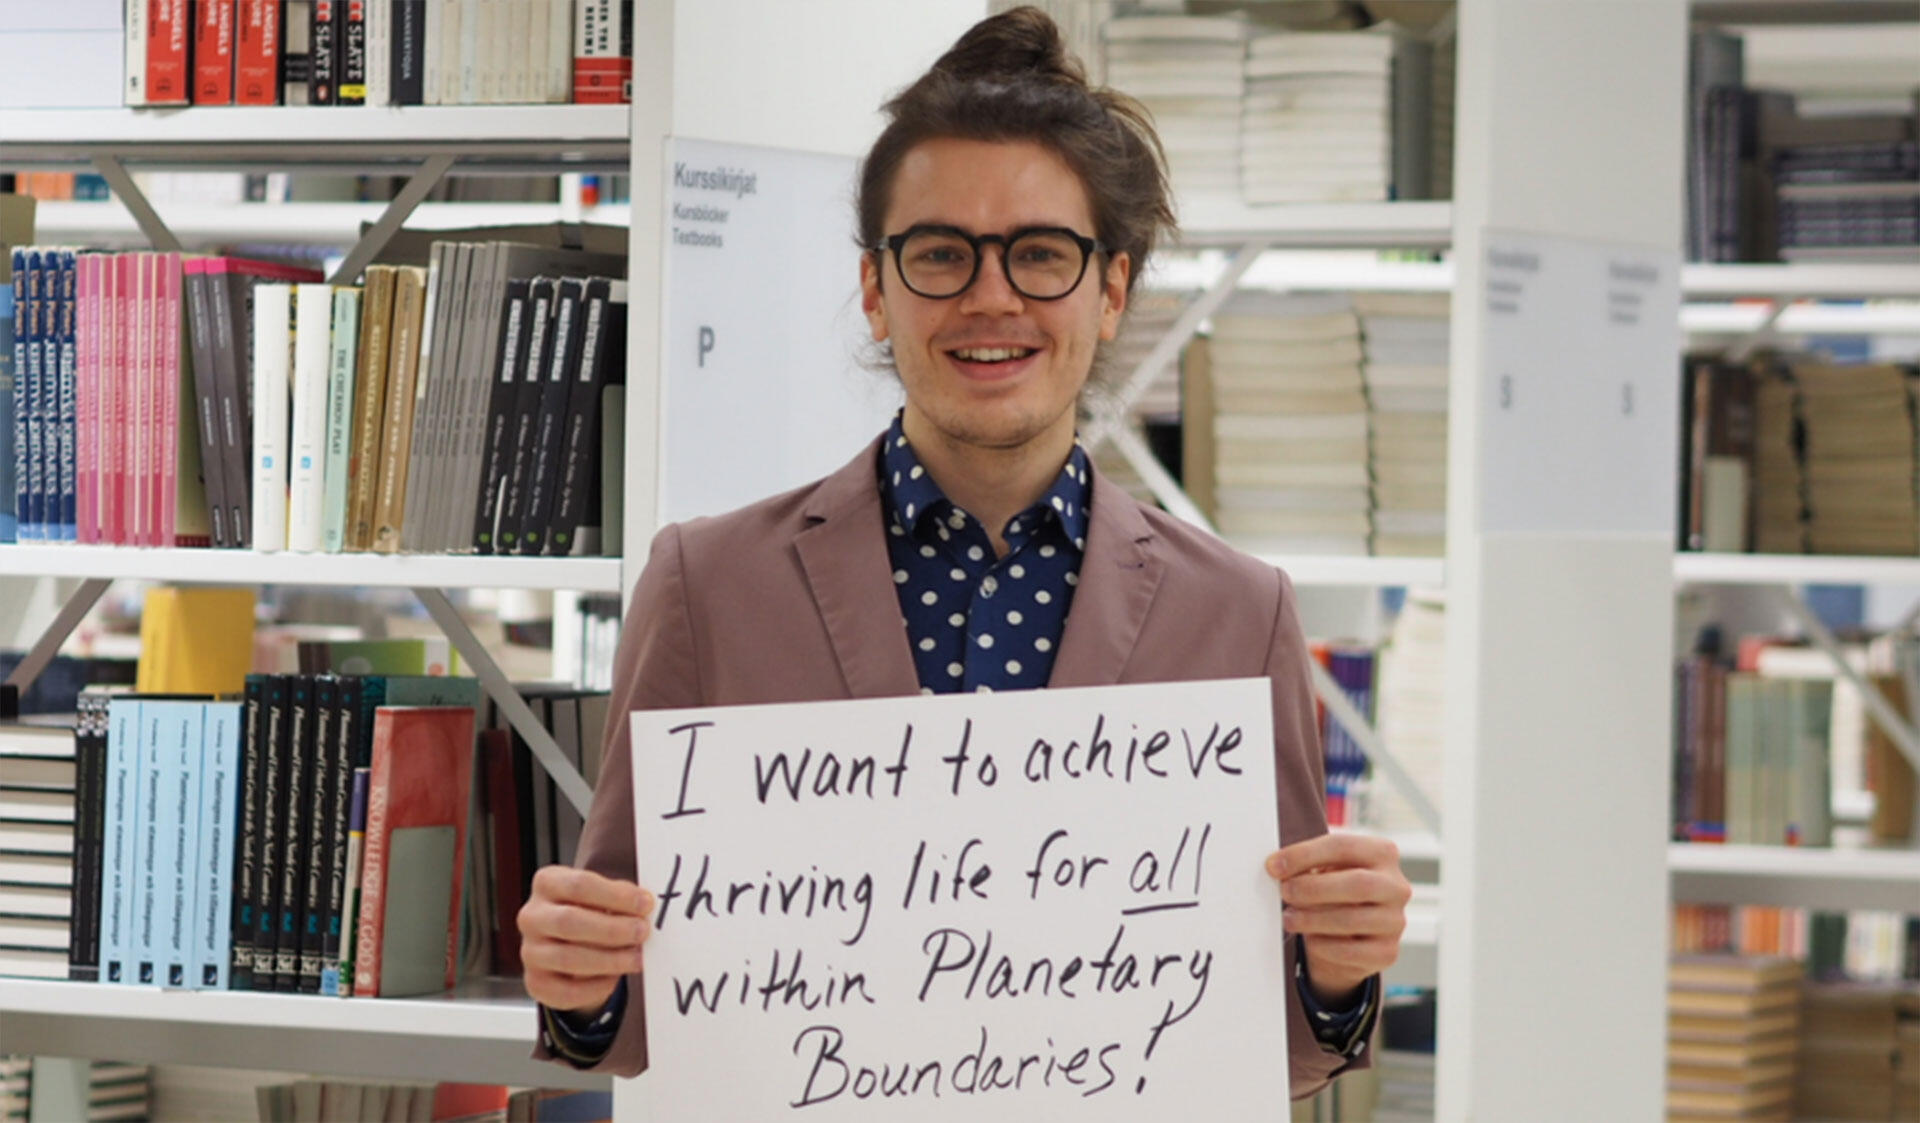 """Jack H. Raisanen, Master's student in Atmospheric Sciences, holding a sign saying """"I want to achieve thriving life for all within Planetary Boundaries""""."""